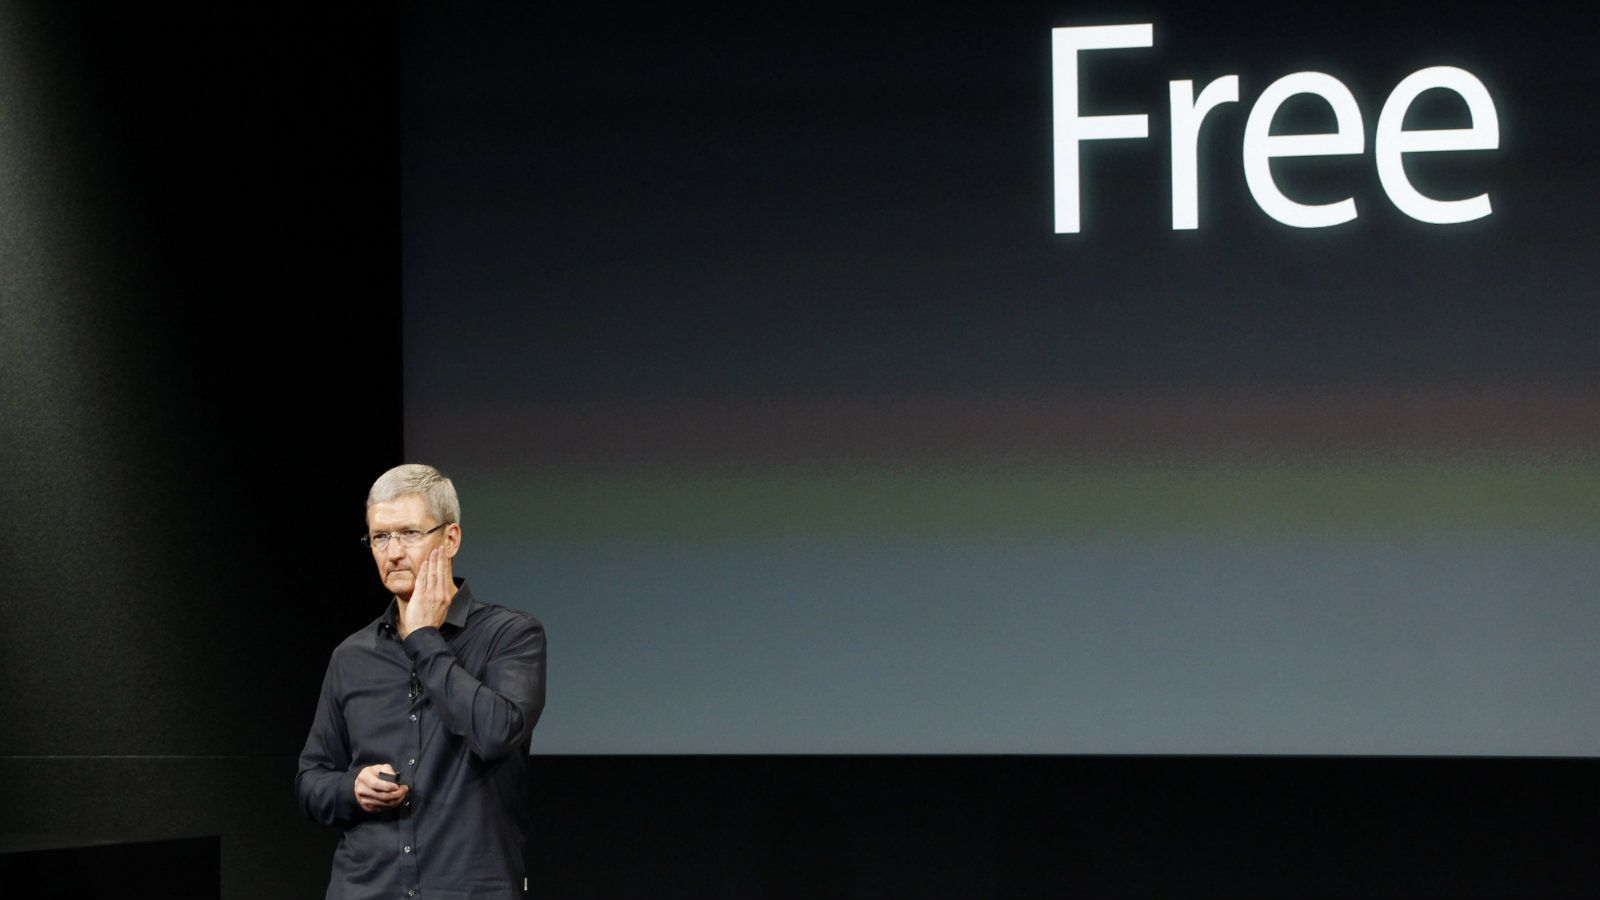 Apple Inc CEO Tim Cook talks about iOS7 during Apple Inc's media event in Cupertino, California September 10, 2013. REUTERS/Stephen Lam (UNITED STATES - Tags: BUSINESS SCIENCE TECHNOLOGY BUSINESS TELECOMS)